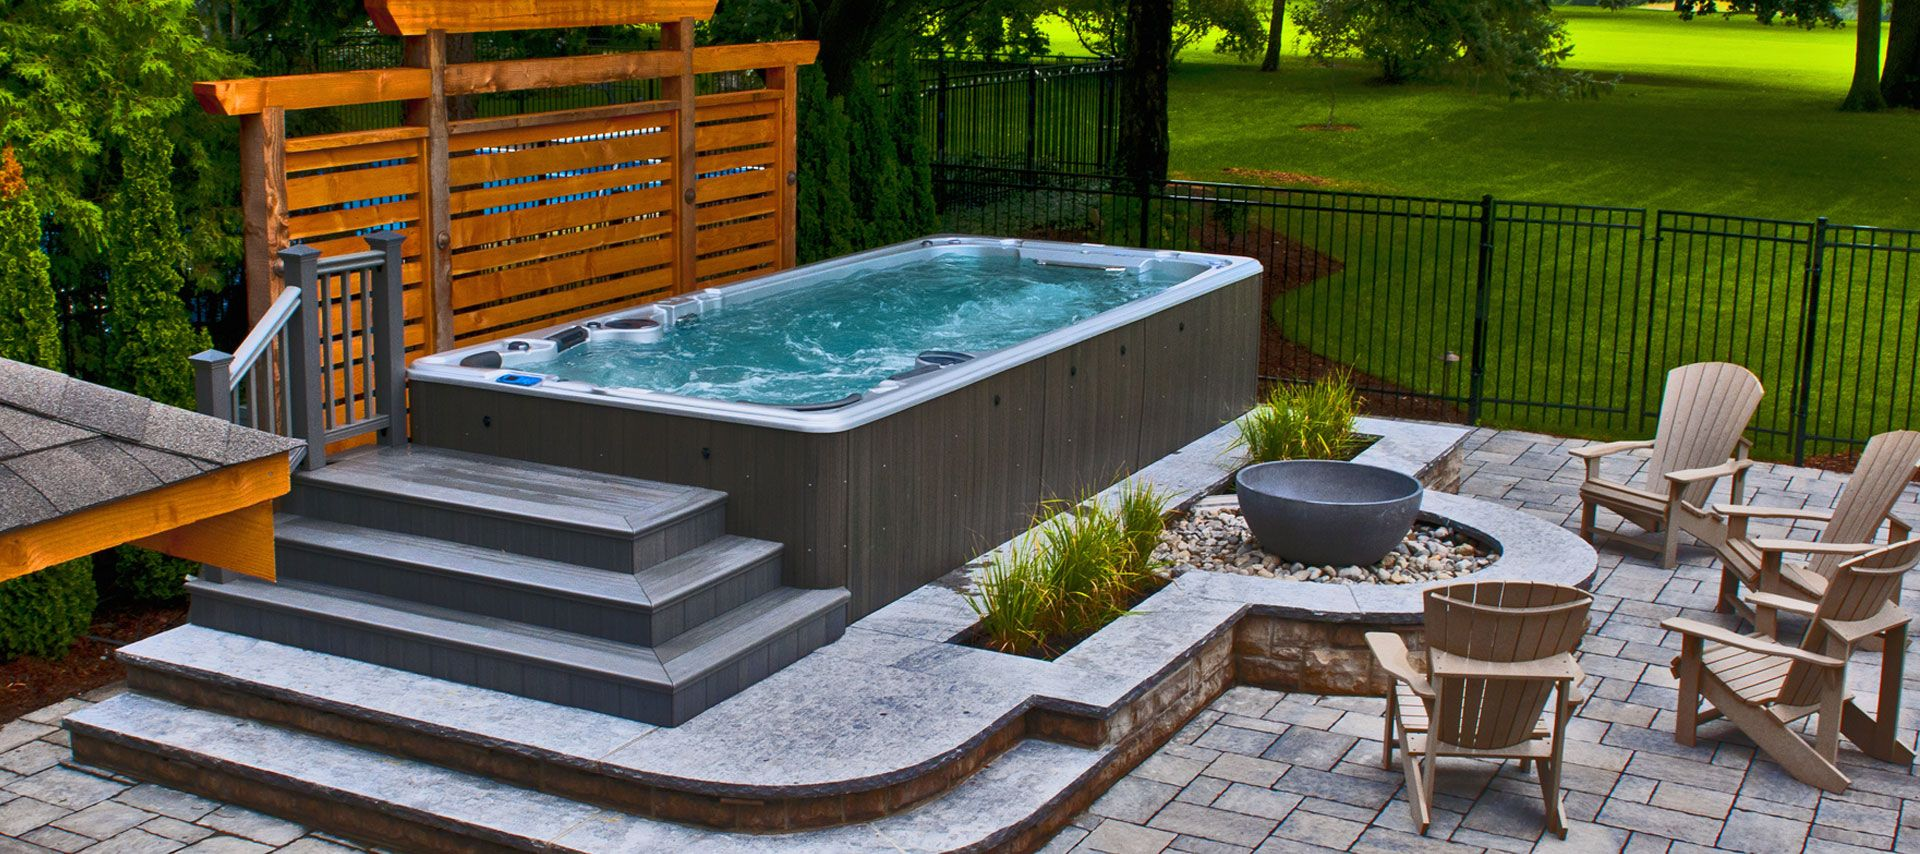 Jacuzzi Pool Hot Tub Hydropool Hot Tubs Swim Spas And Accessories Jacuzzi